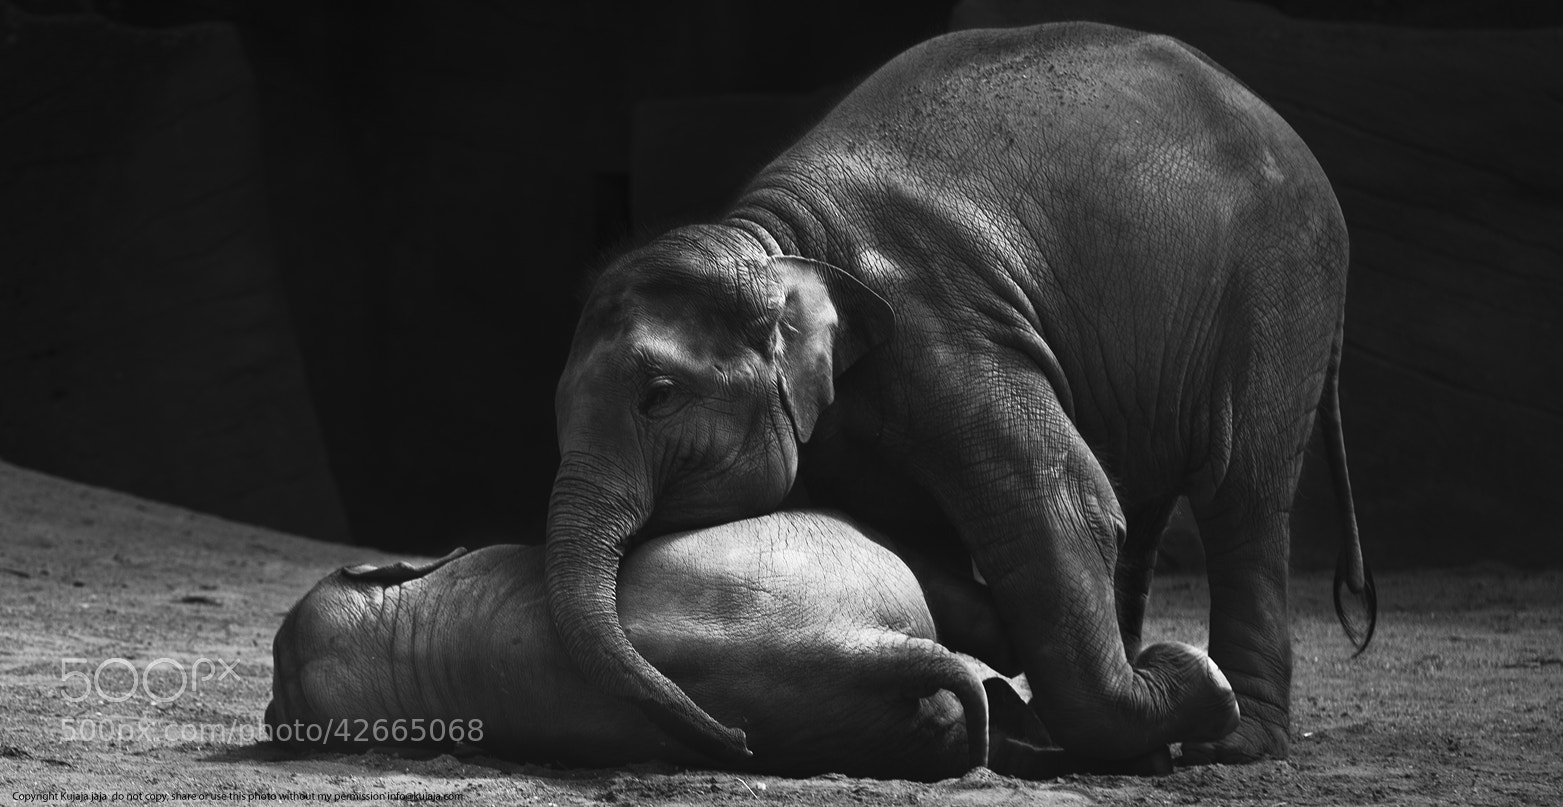 Photograph Don't die baby brother by K J on 500px